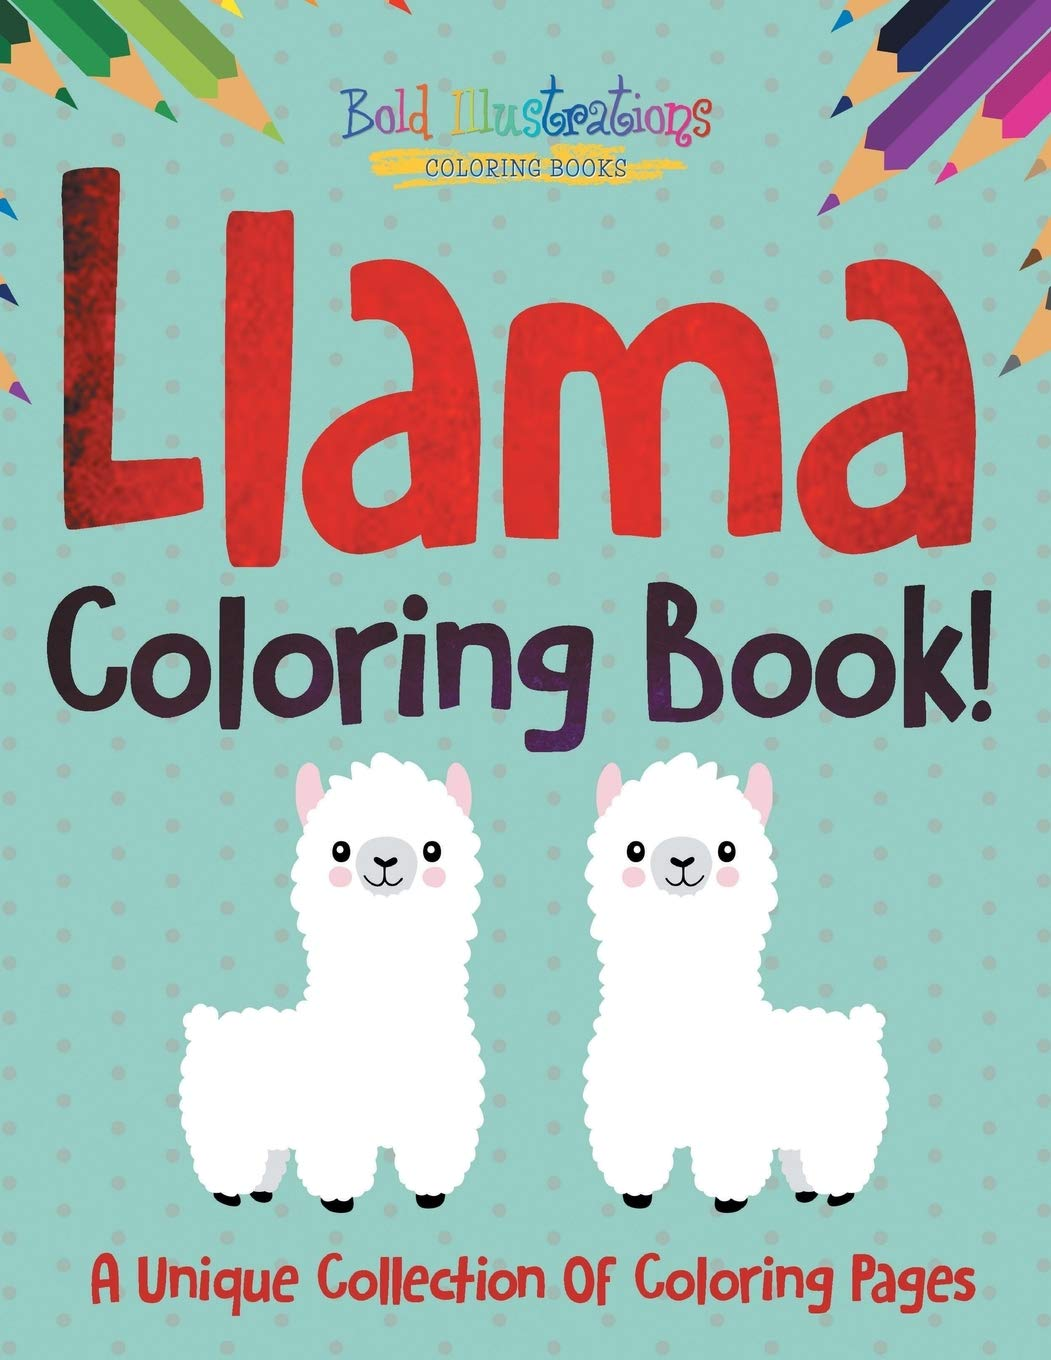 Llama Coloring Book A Unique Collection Of Coloring Pages Illustrations Bold 9781641938549 Amazon Com Books